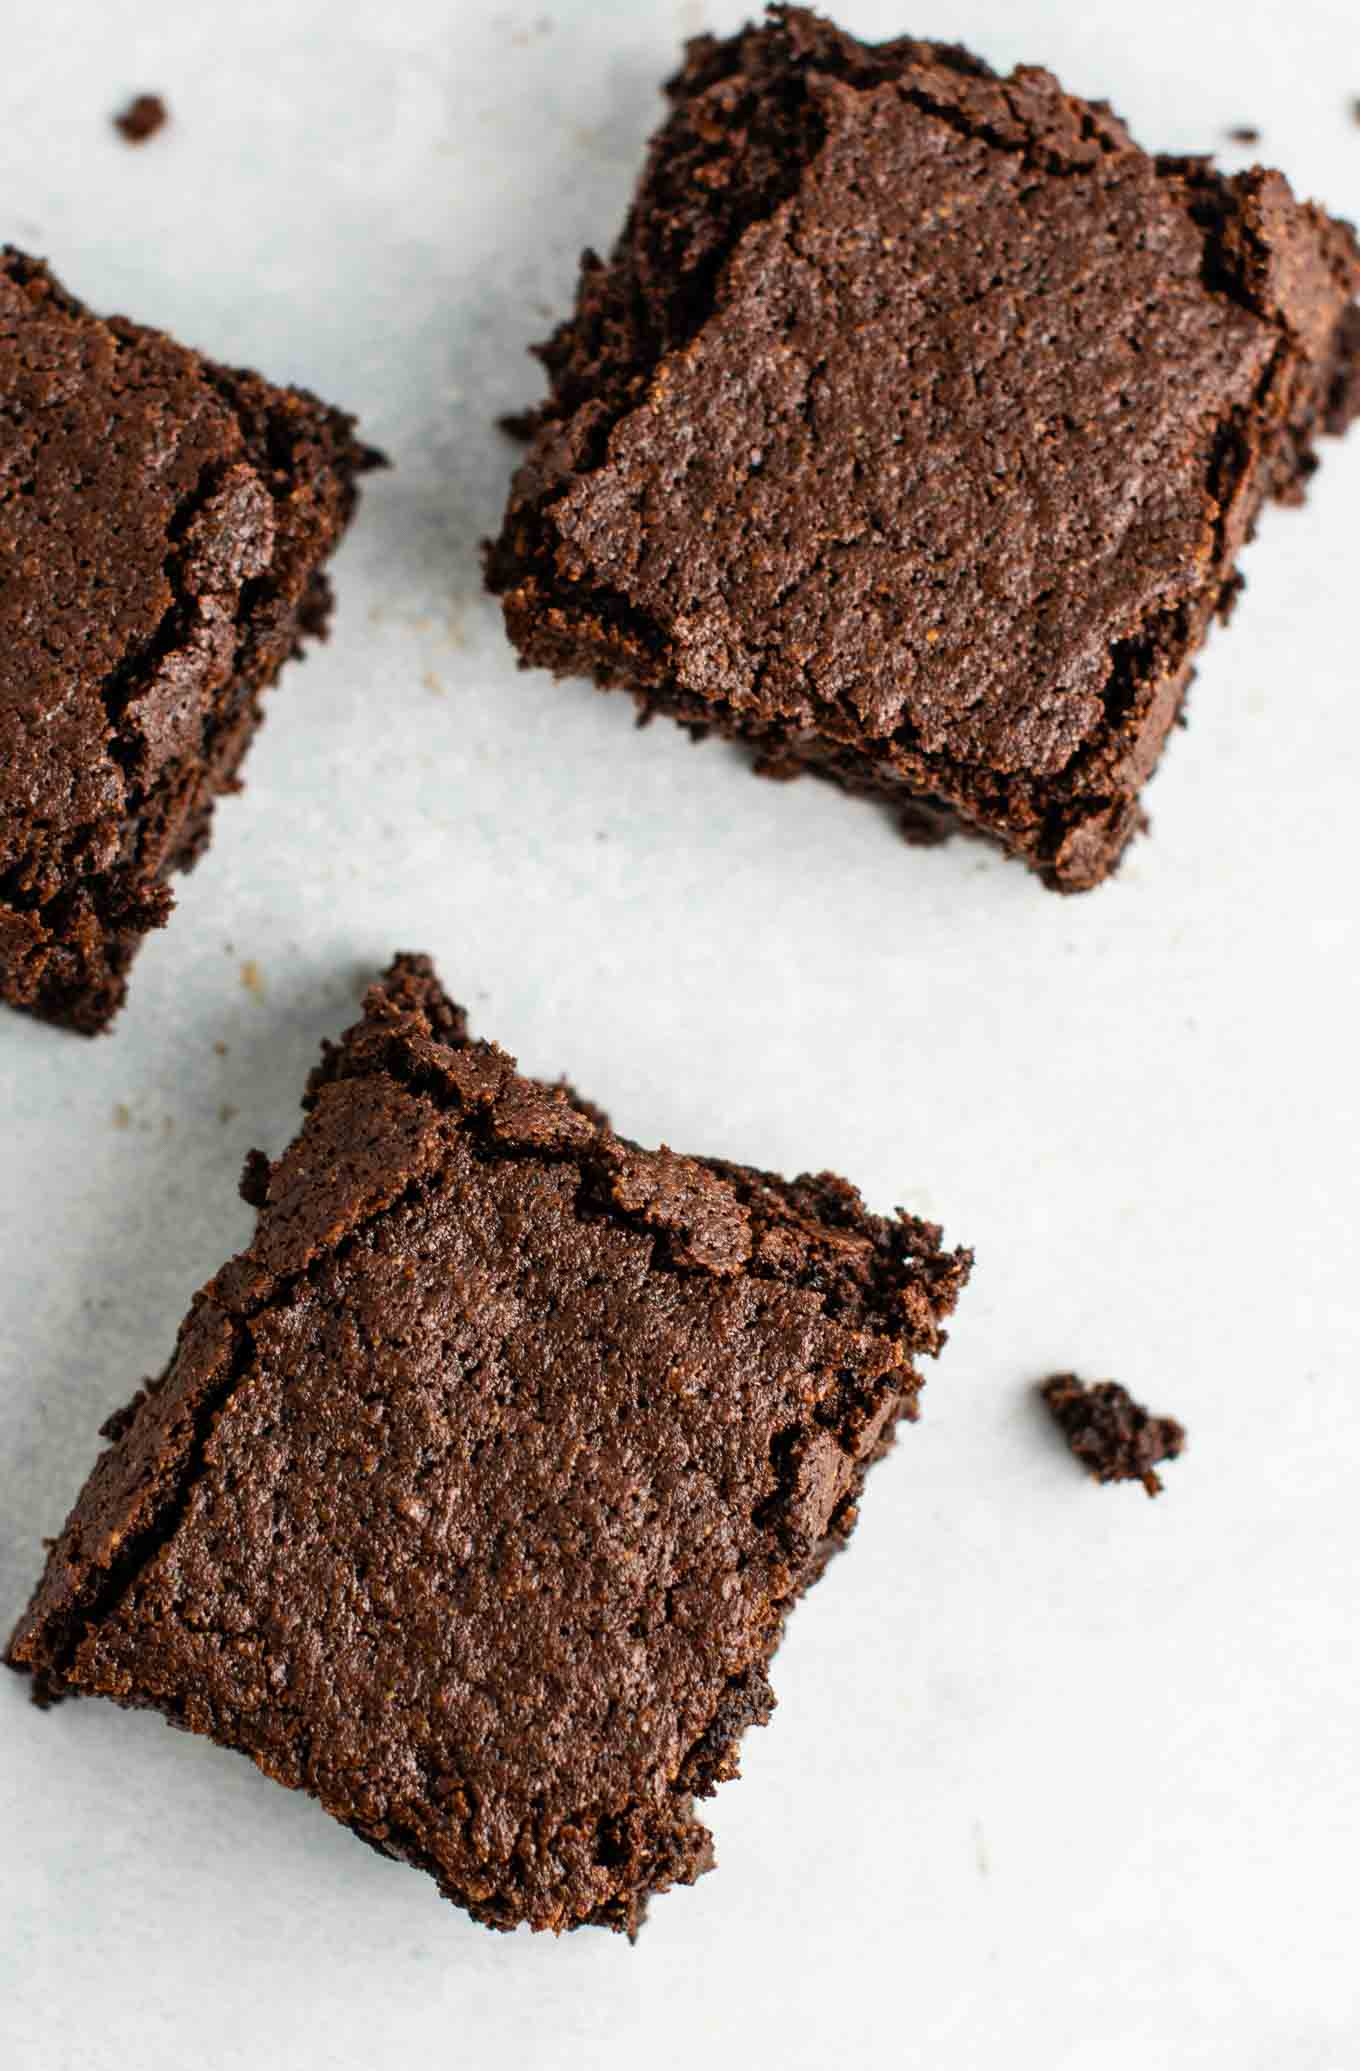 Easy gluten free dairy free brownies made with oat flour and coconut flour. Fudgy, and taste amazing! #glutenfreebrownies #glutenfree #glutenfreedessert #dessert #brownies #oatflour #coconutflour